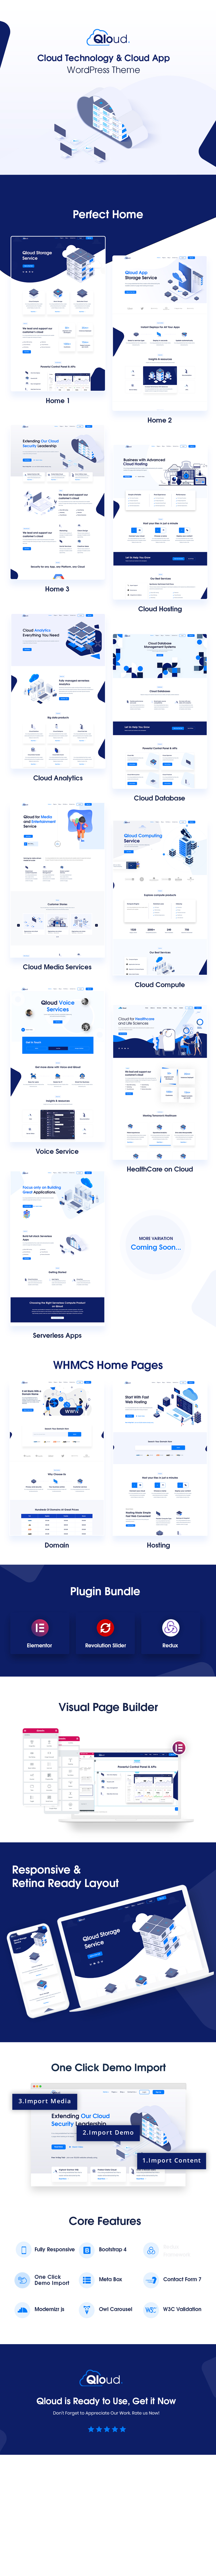 WHMCS, Cloud Computing, Apps and Server WordPress Theme   Qloud   Iqonic Design whmcs cloud computing apps and server wordpress theme Qloud long preveiw